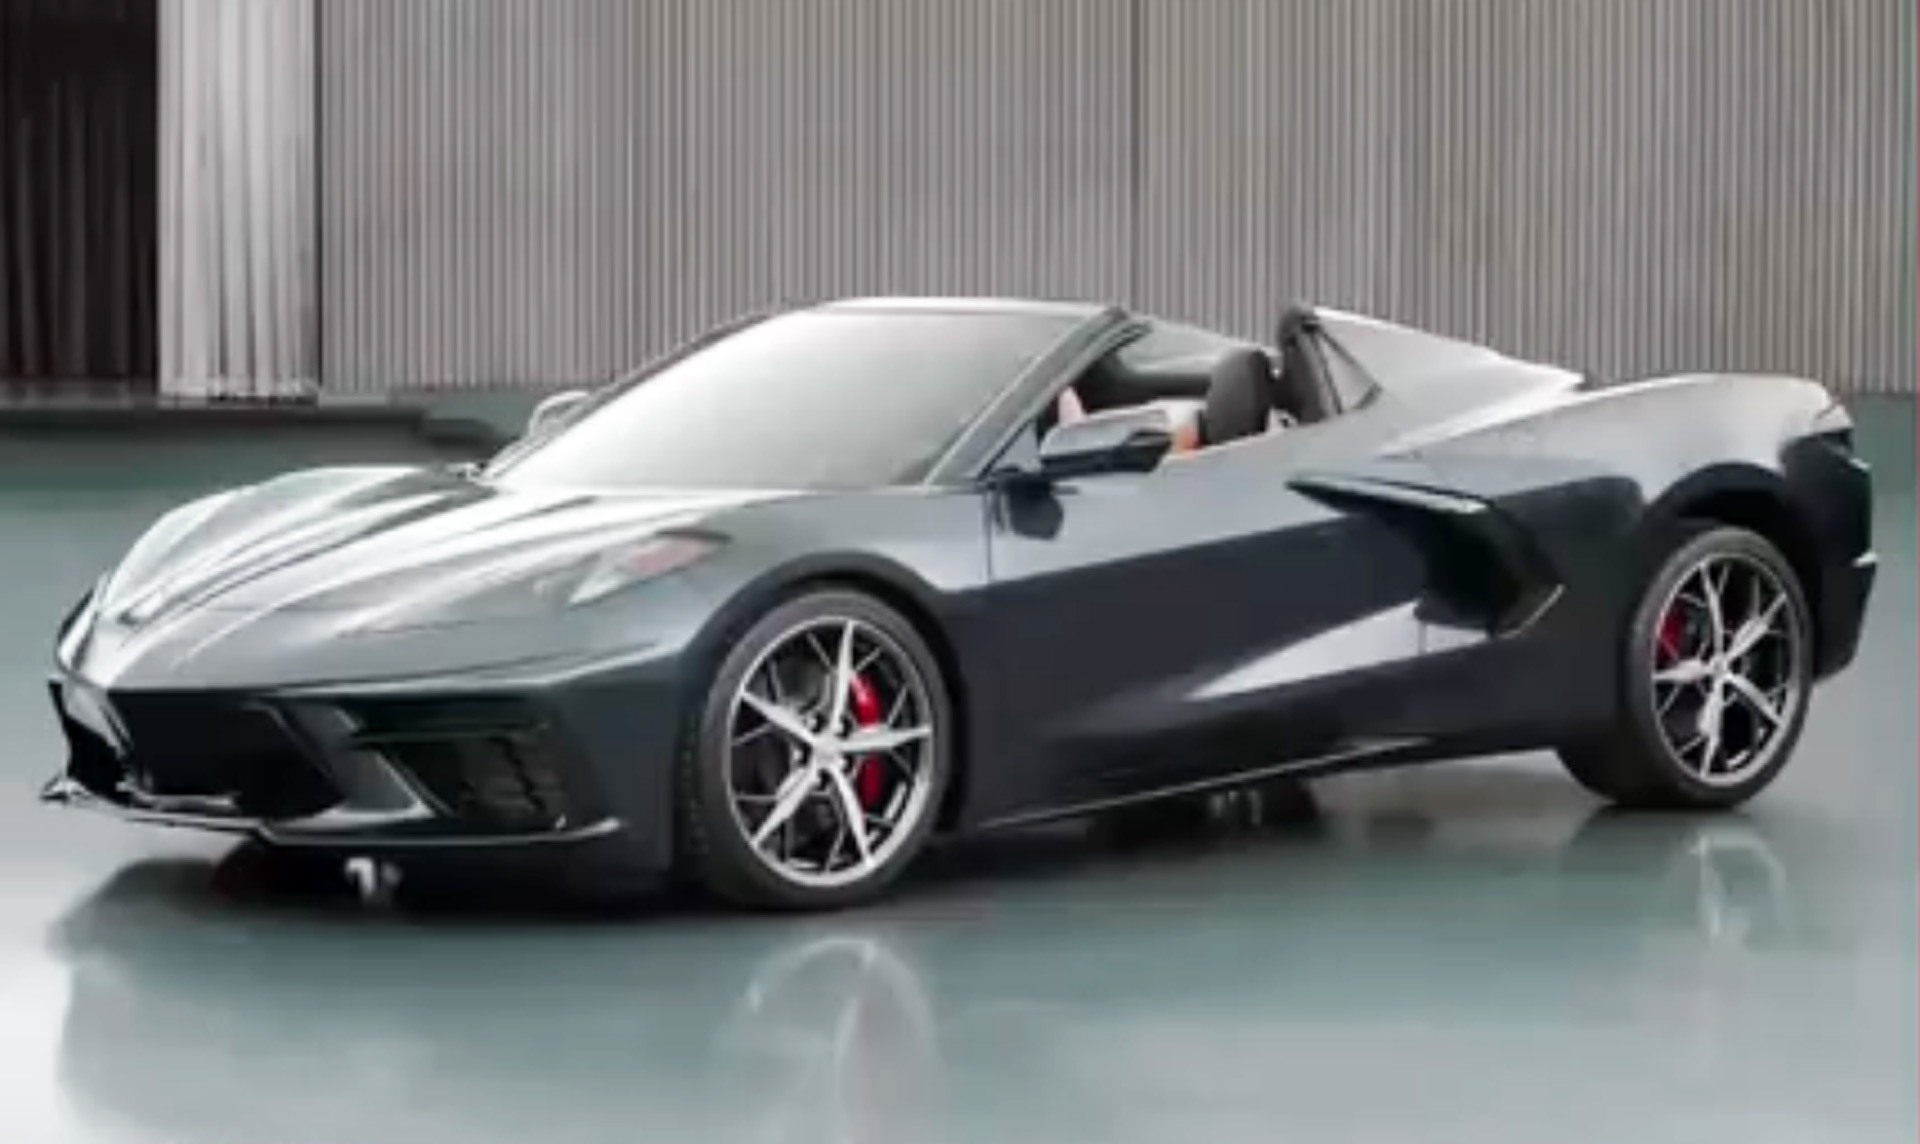 Top Already Dropped On 2020 Chevrolet Corvette Stingray Convertible